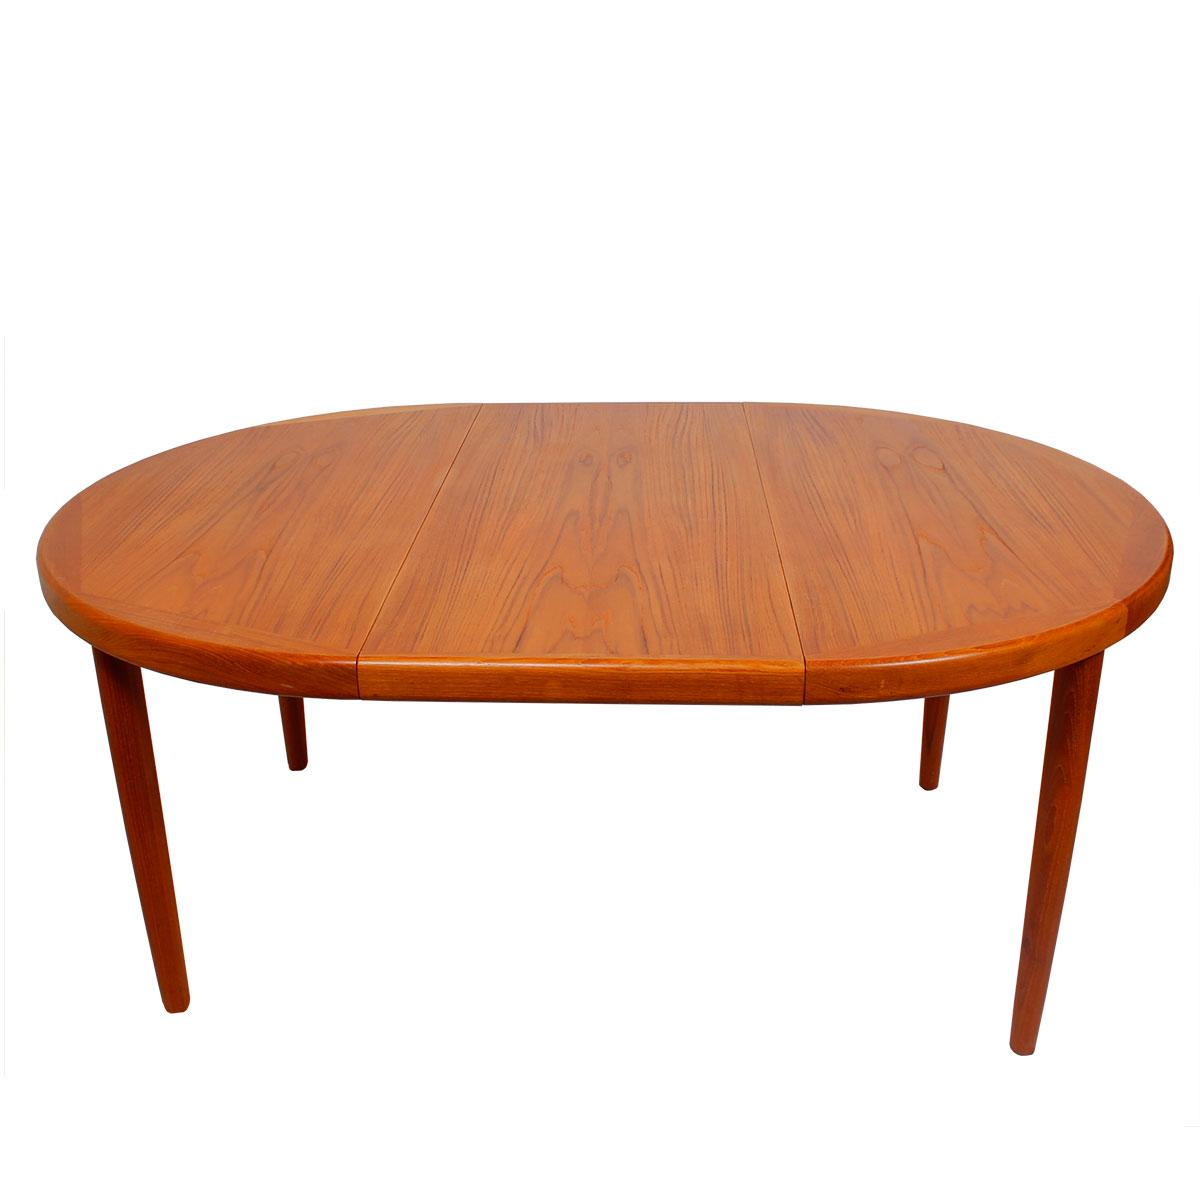 Danish Teak RoundOval Dining Table amp Pads Chairish : 0342c96c 3740 4a70 abaf b0790cd1c733aspectfitampwidth640ampheight640 from www.chairish.com size 640 x 640 jpeg 25kB